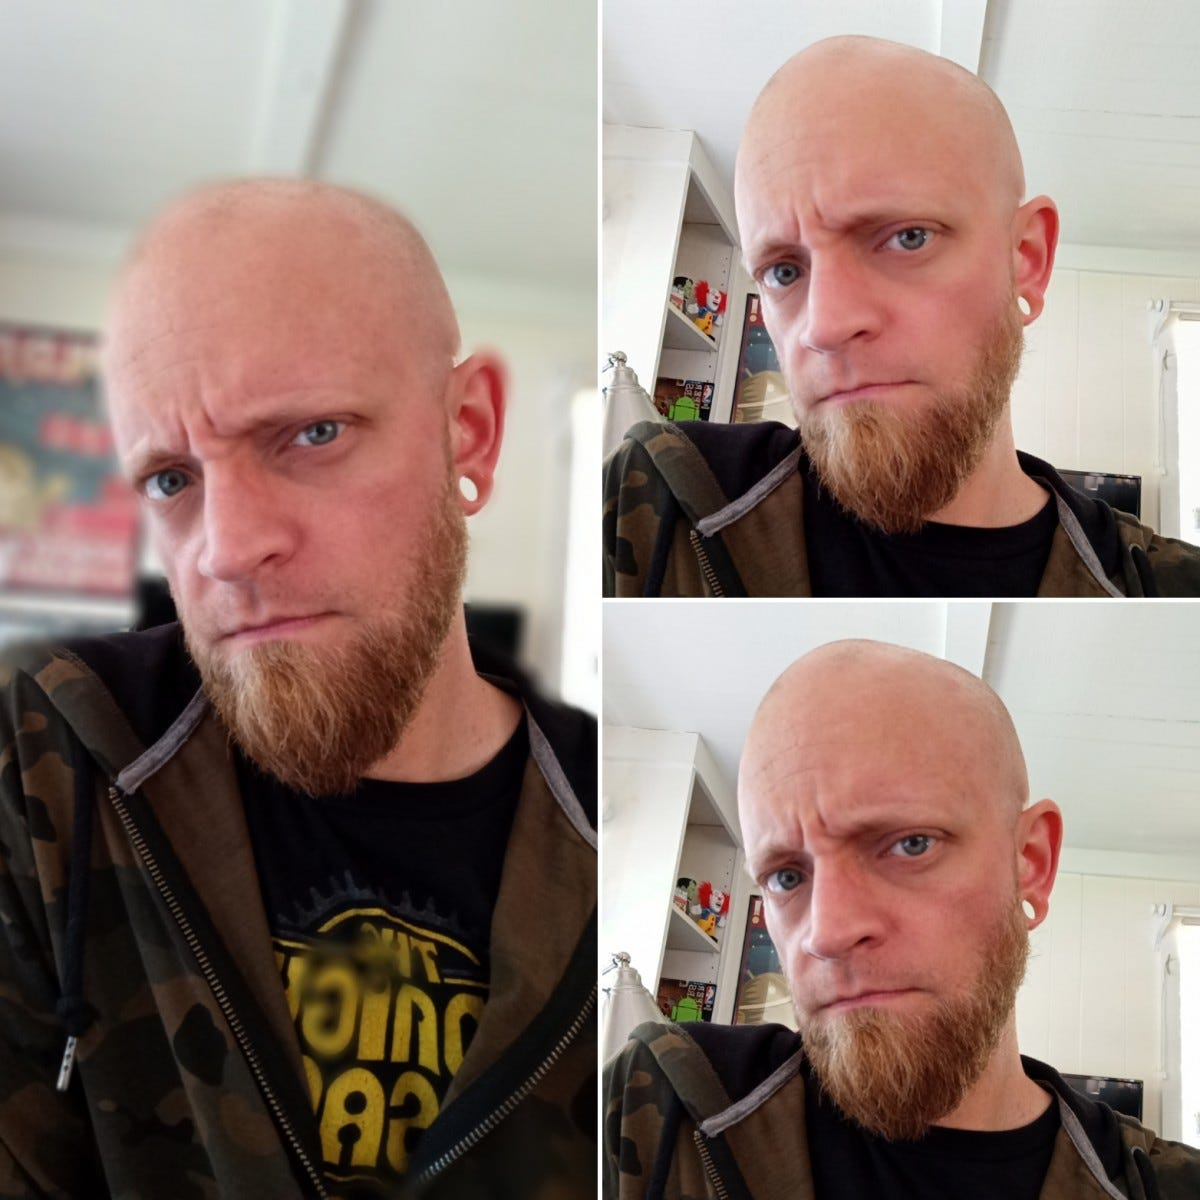 examples from the G9 Pro's front facing camera